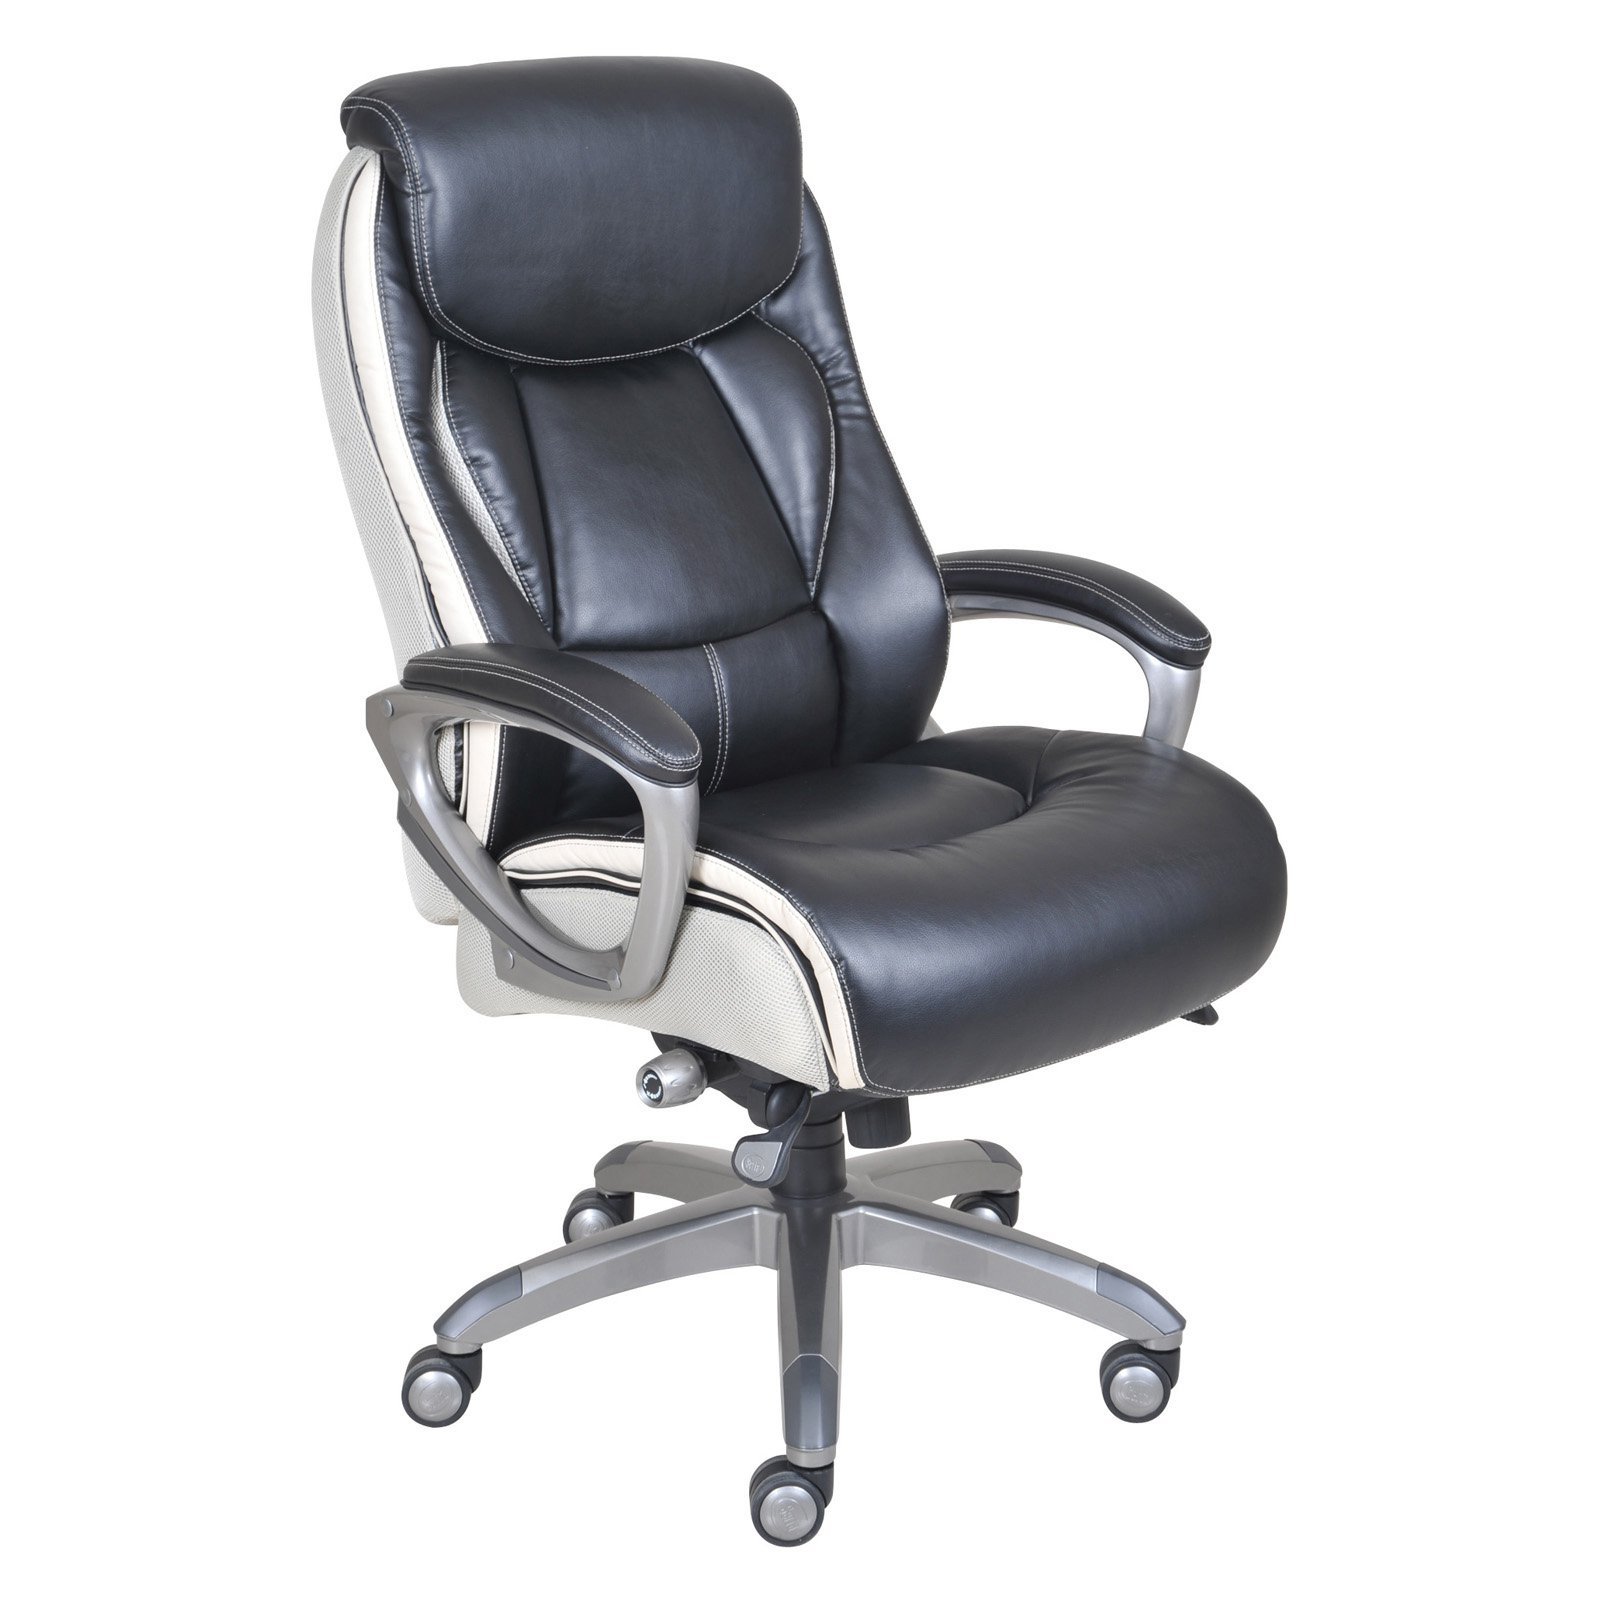 Serta Smart Layers Executive Office Chair, Tranquility